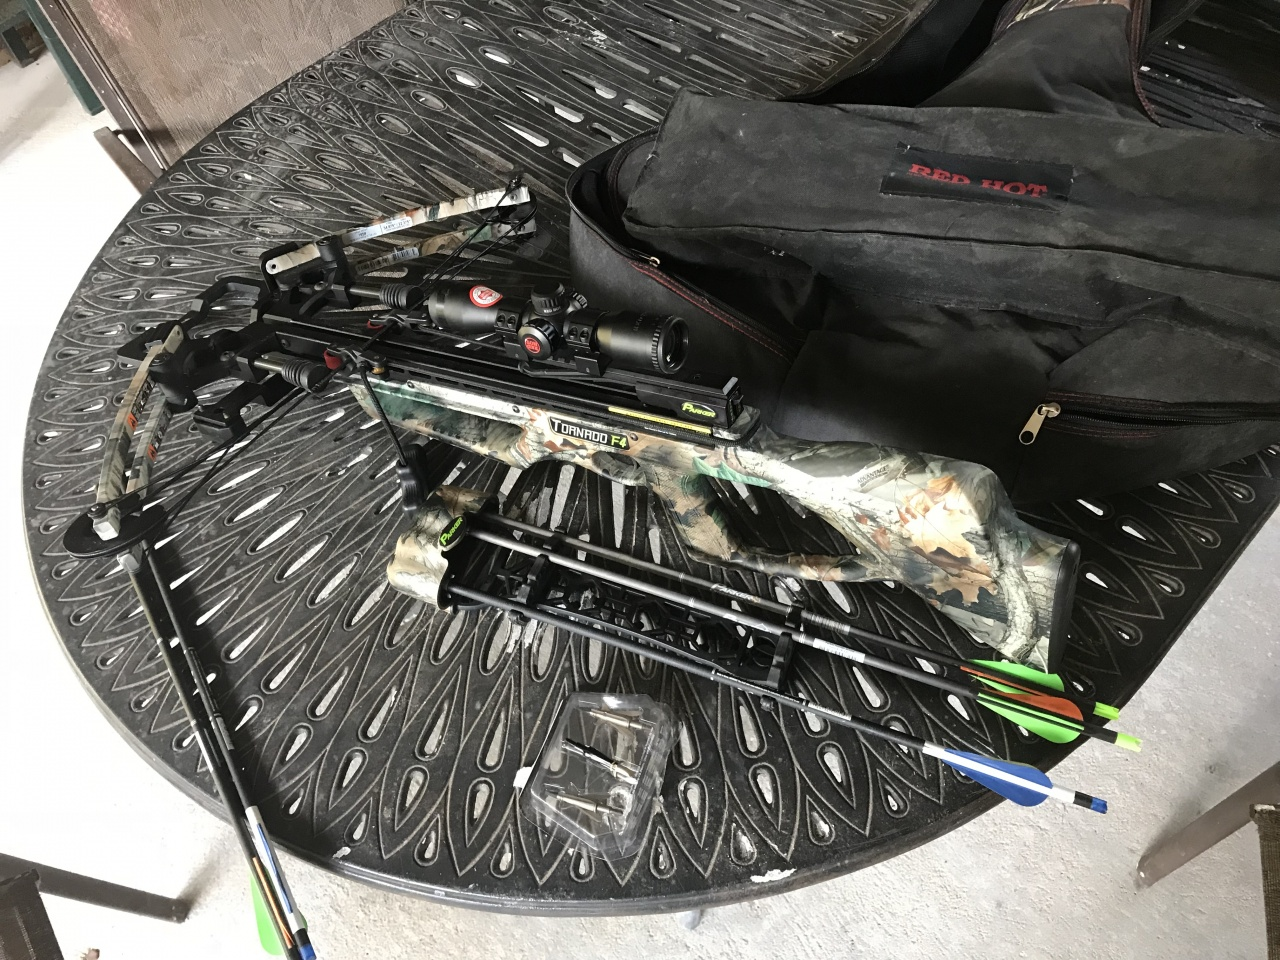 Crossbow for sale-2d0d4078-bdbe-4103-be6d-4f098e846c1f-jpg